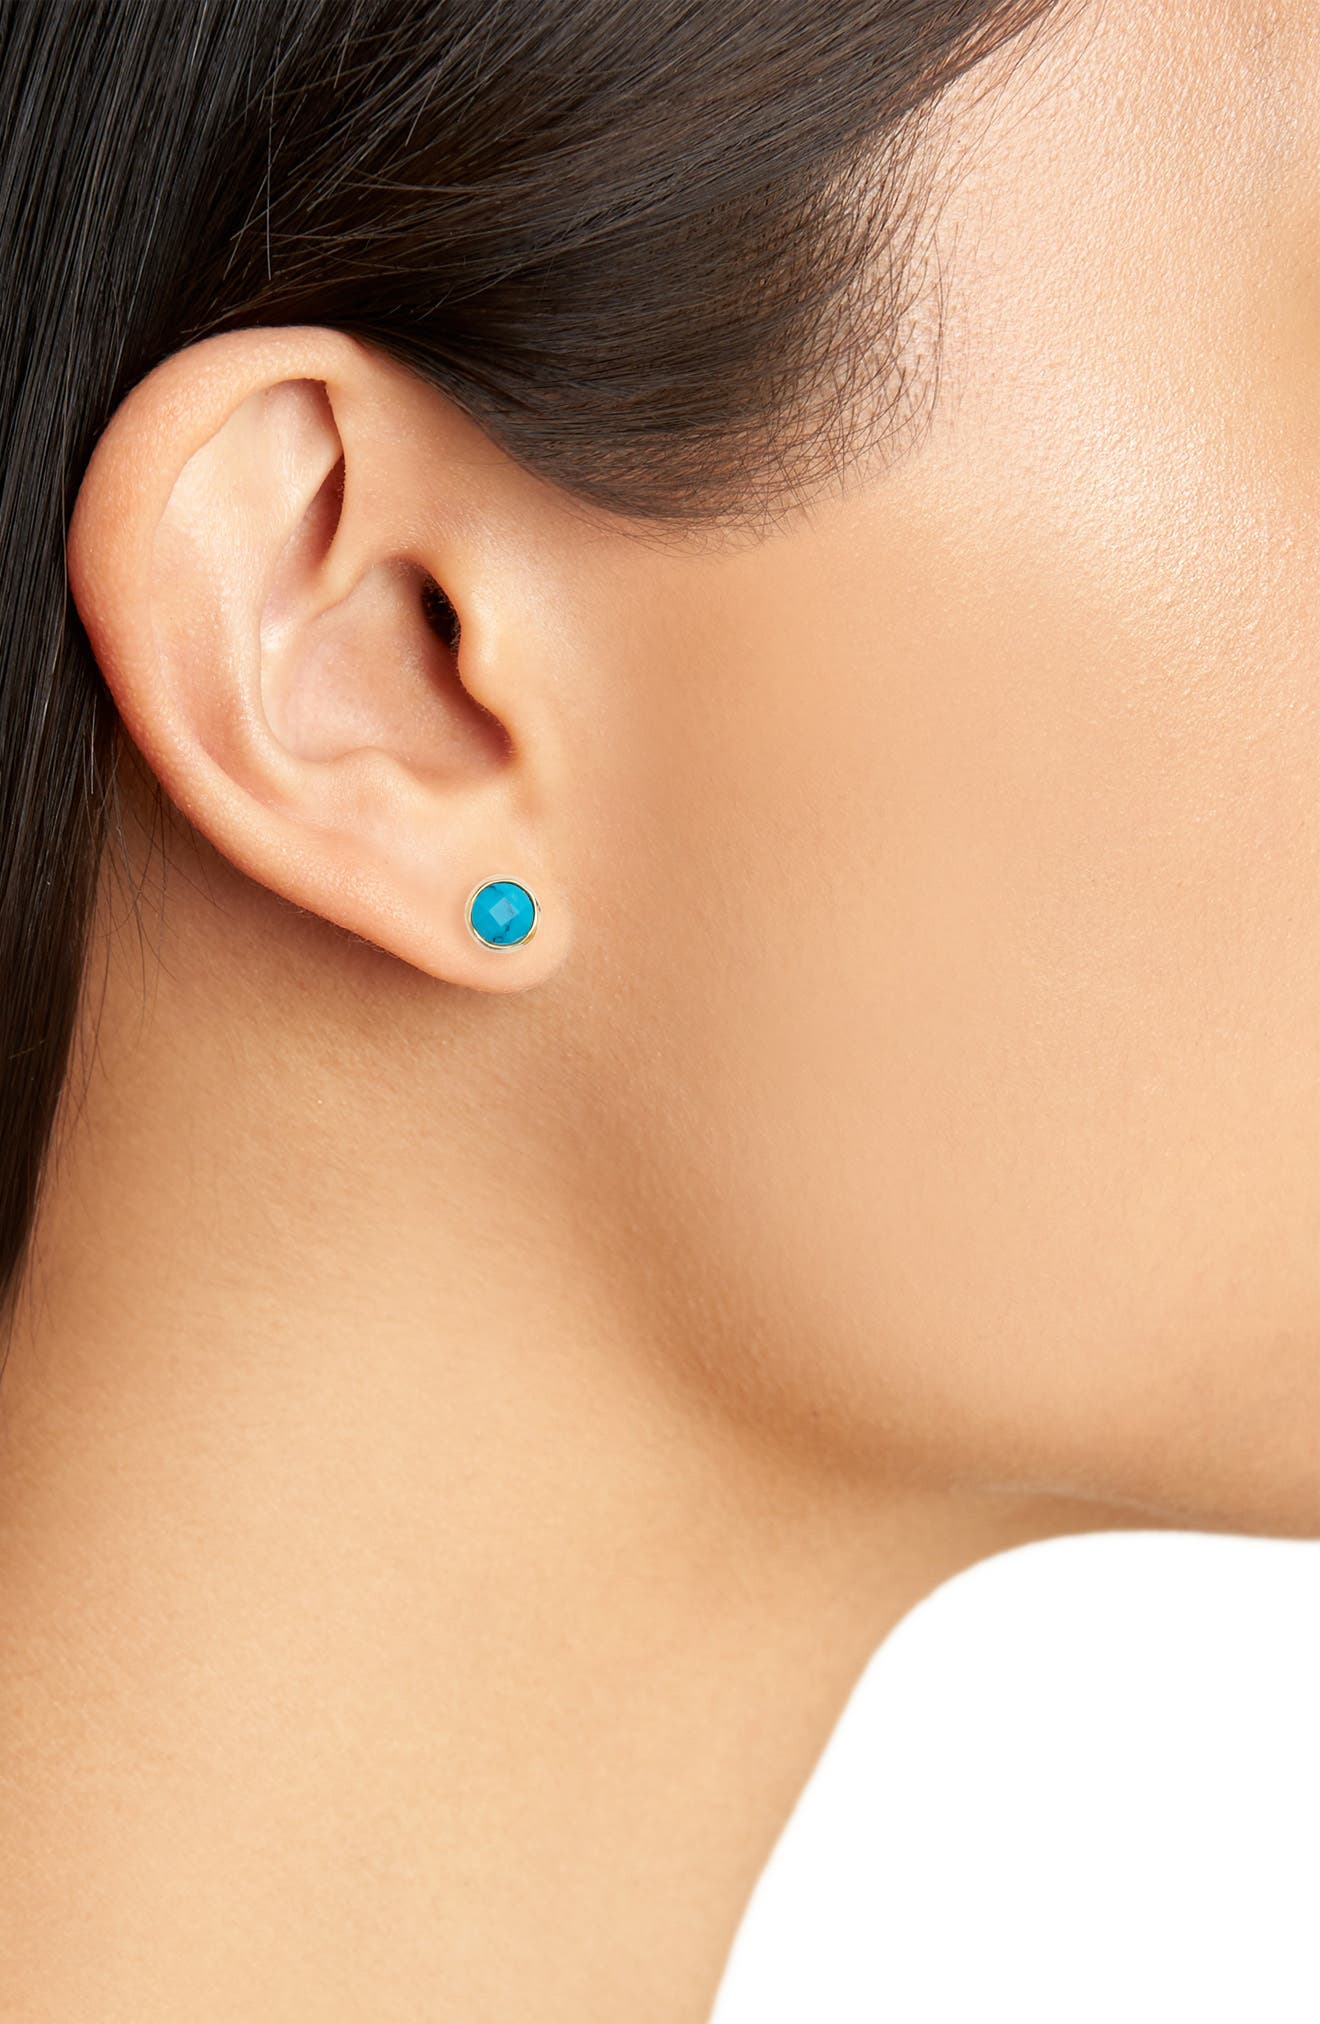 Healing Studs Earrings,                             Alternate thumbnail 2, color,                             TURQUOISE/ GOLD